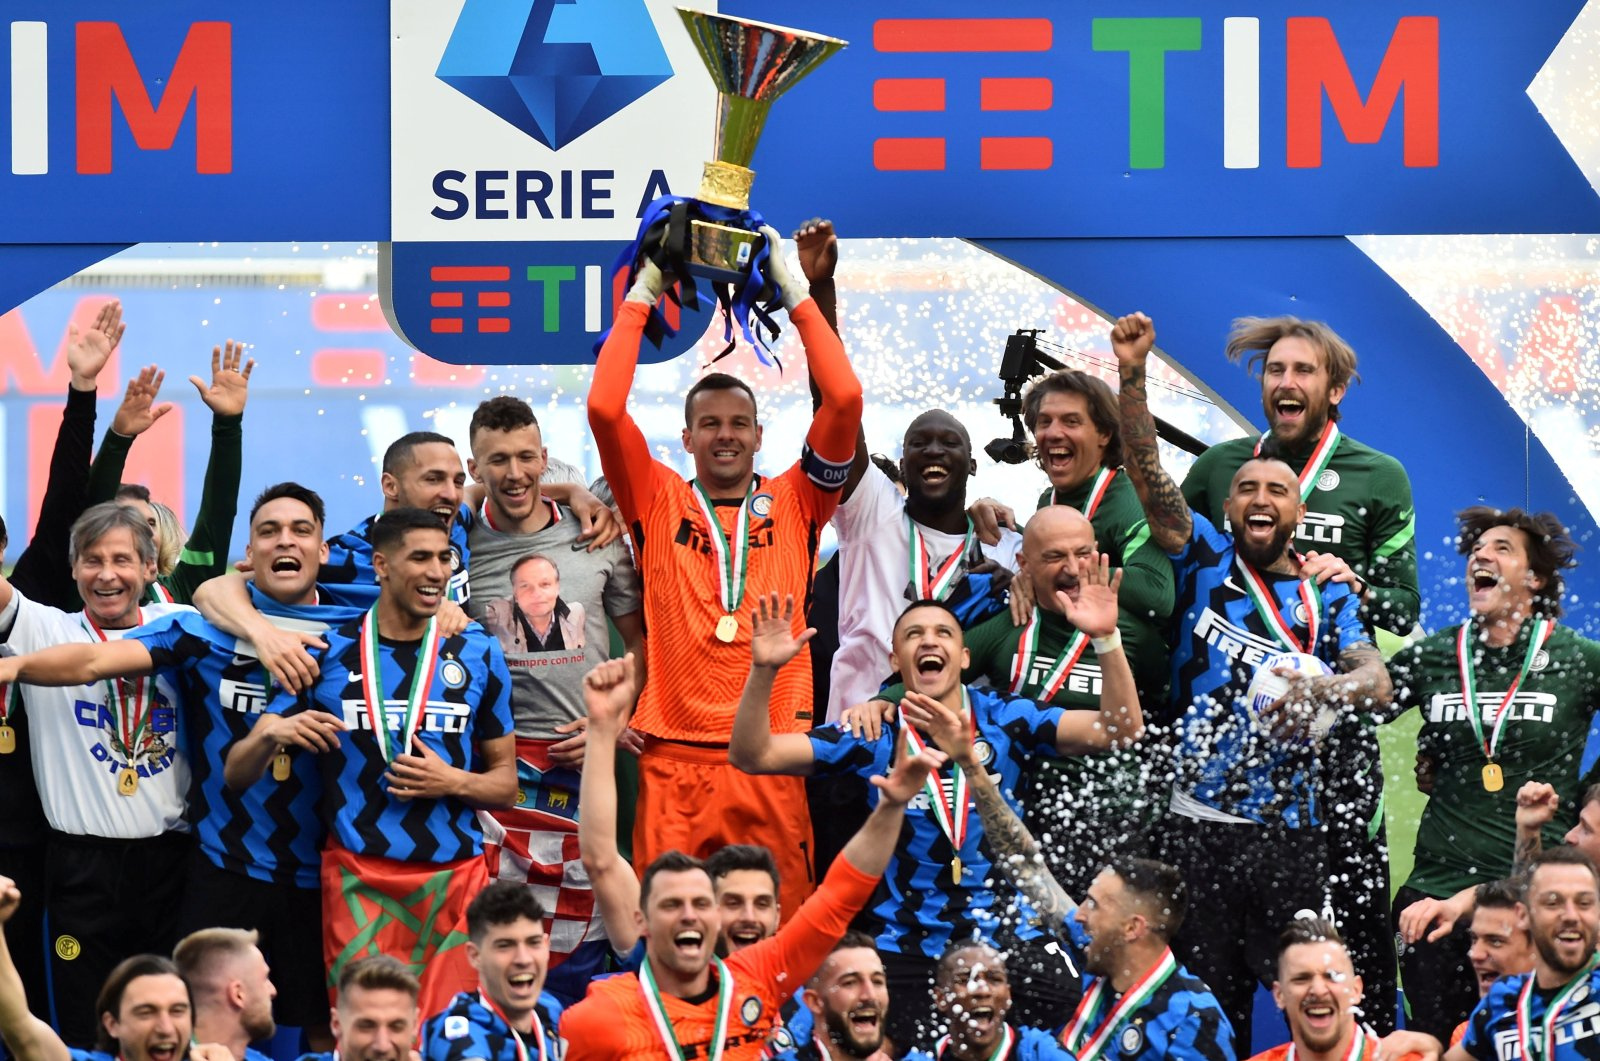 Inter Milan players celebrate after winning the Serie A title at the San Siro, Milan, Italy, May 23, 2021. (Reuters Photo)